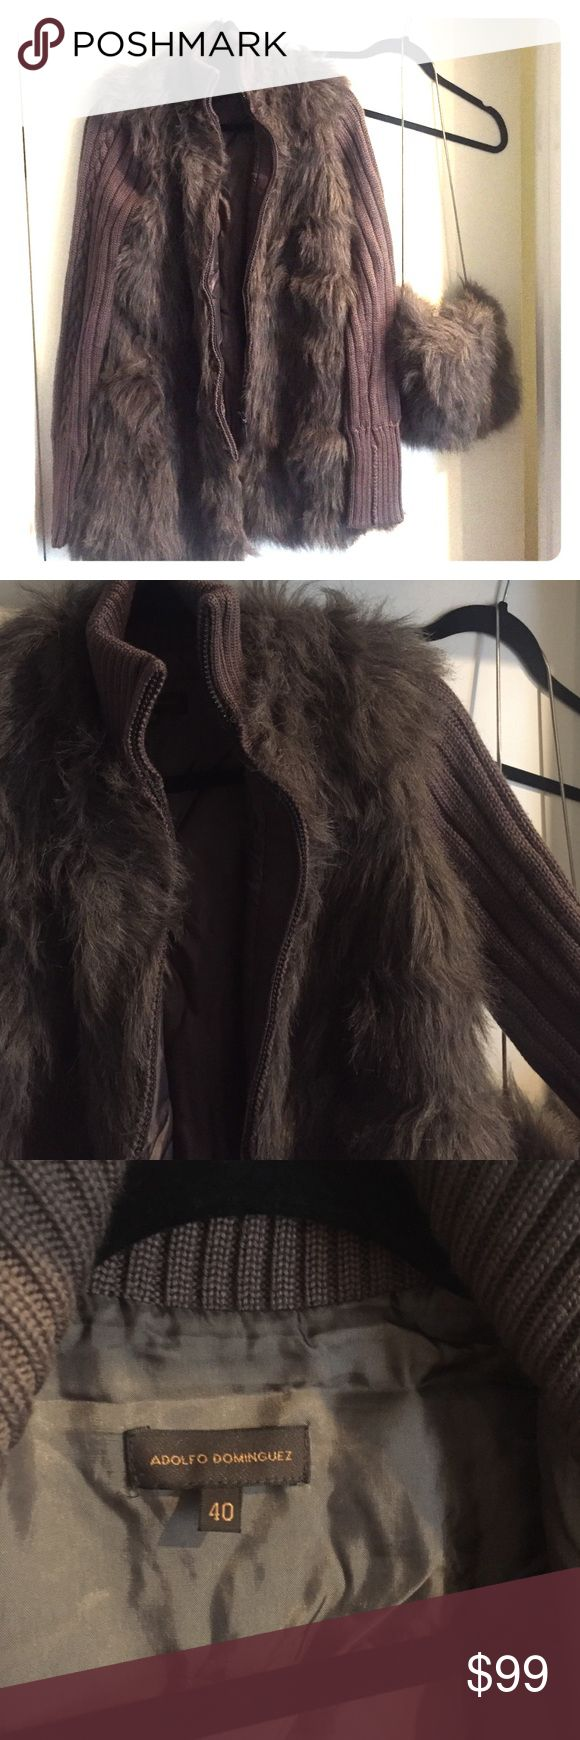 Faux fur sweater and hand warmer. No tags but never been used.  Bought in Japan. UK size 40 Adolfo Dominguez Sweaters Cardigans